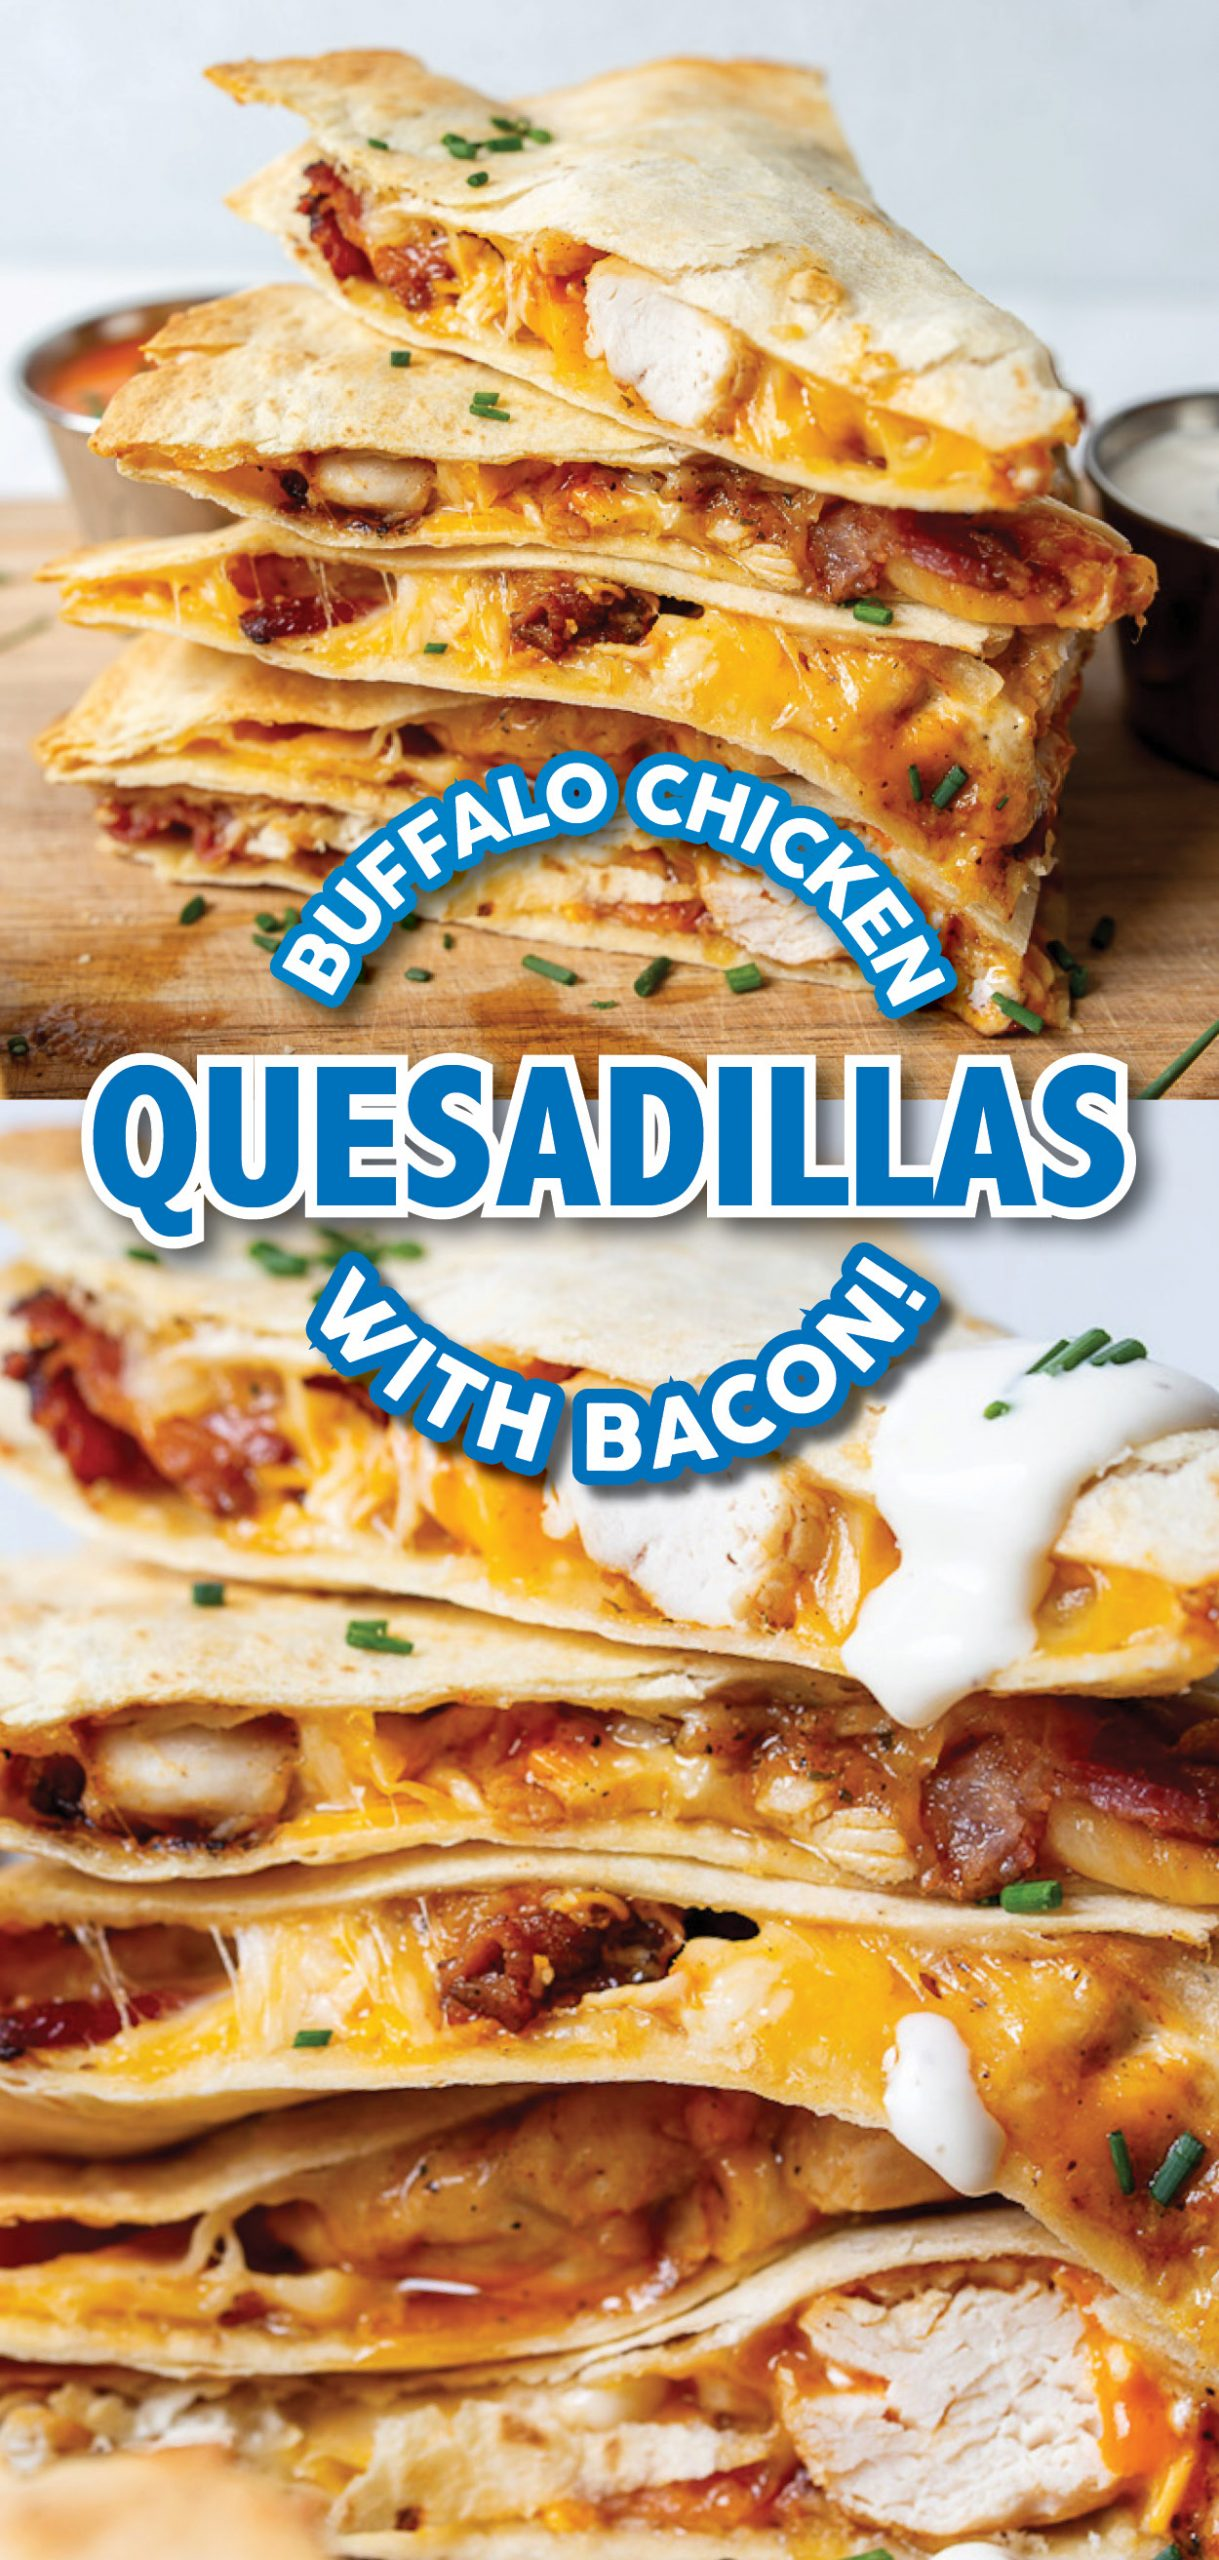 Buffalo Chicken and Bacon Quesadillas - These DELICIOUS quesadillas are SO easy to make and are ready in about 20 minutes! It is the snack, lunch, or even dinner idea you never knew you were missing.